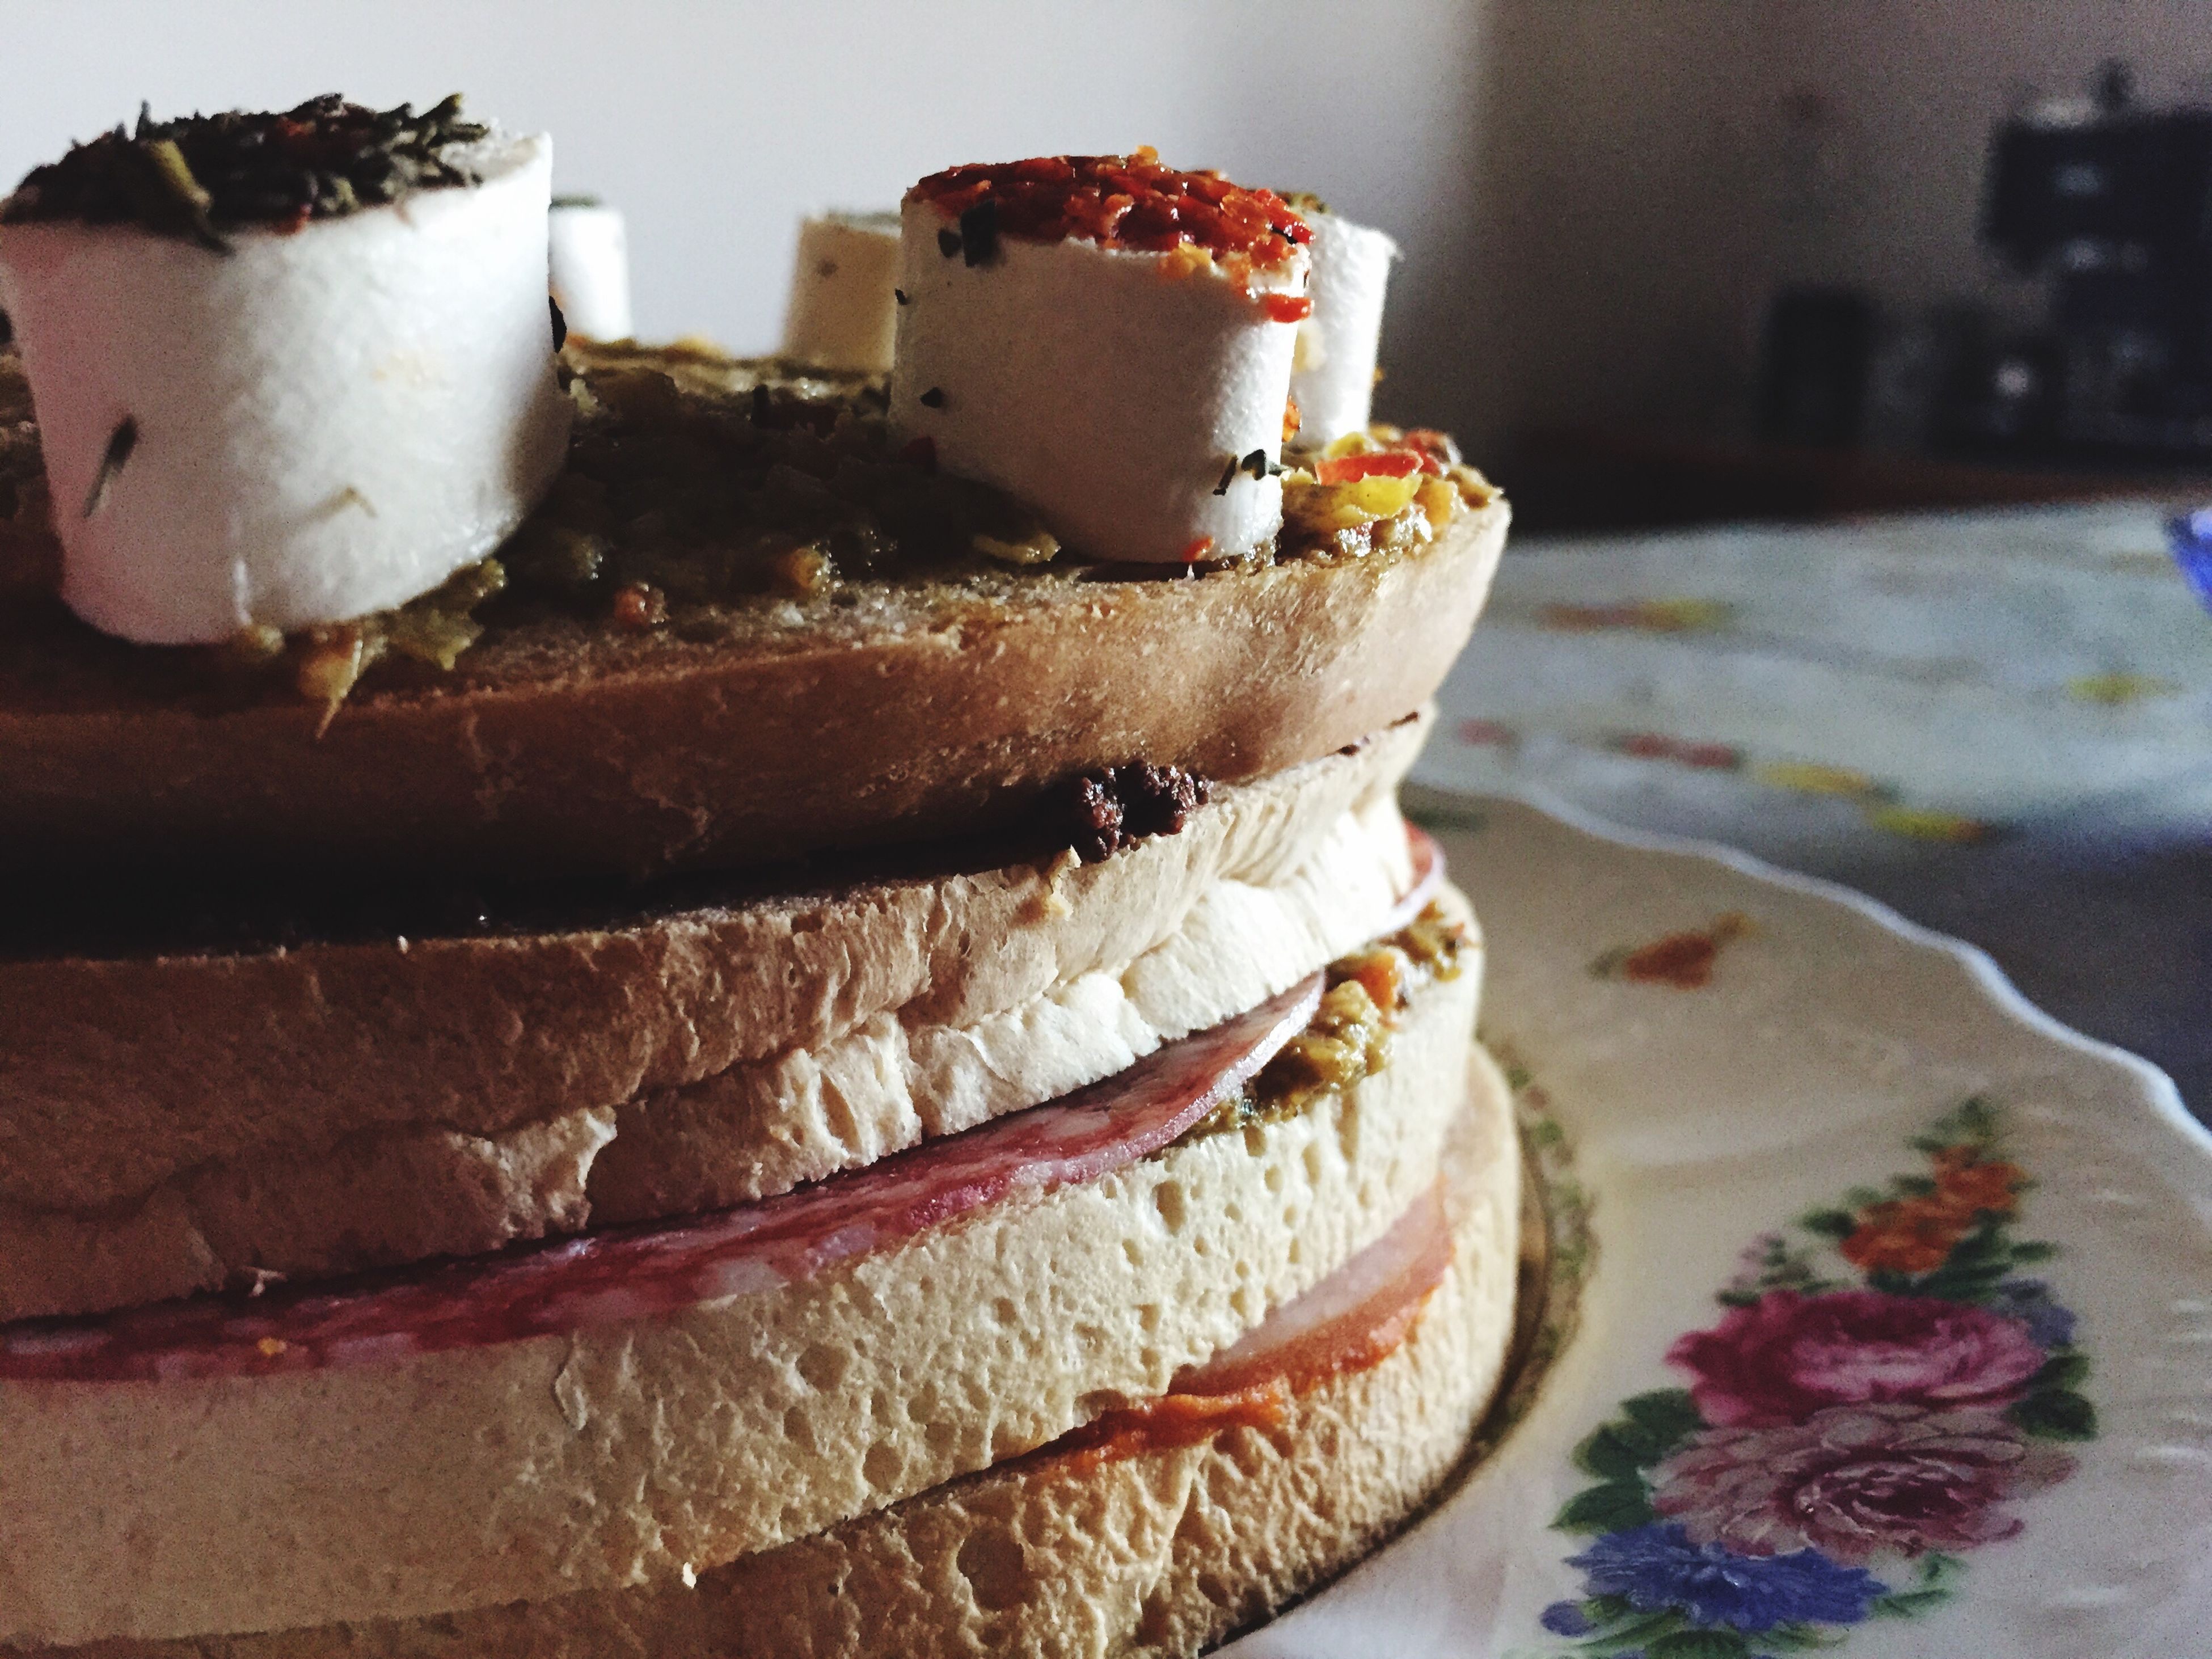 close-up, food, still life, focus on foreground, food and drink, indoors, sweet food, freshness, unhealthy eating, no people, dessert, indulgence, cake, table, ready-to-eat, stack, day, selective focus, in a row, plate